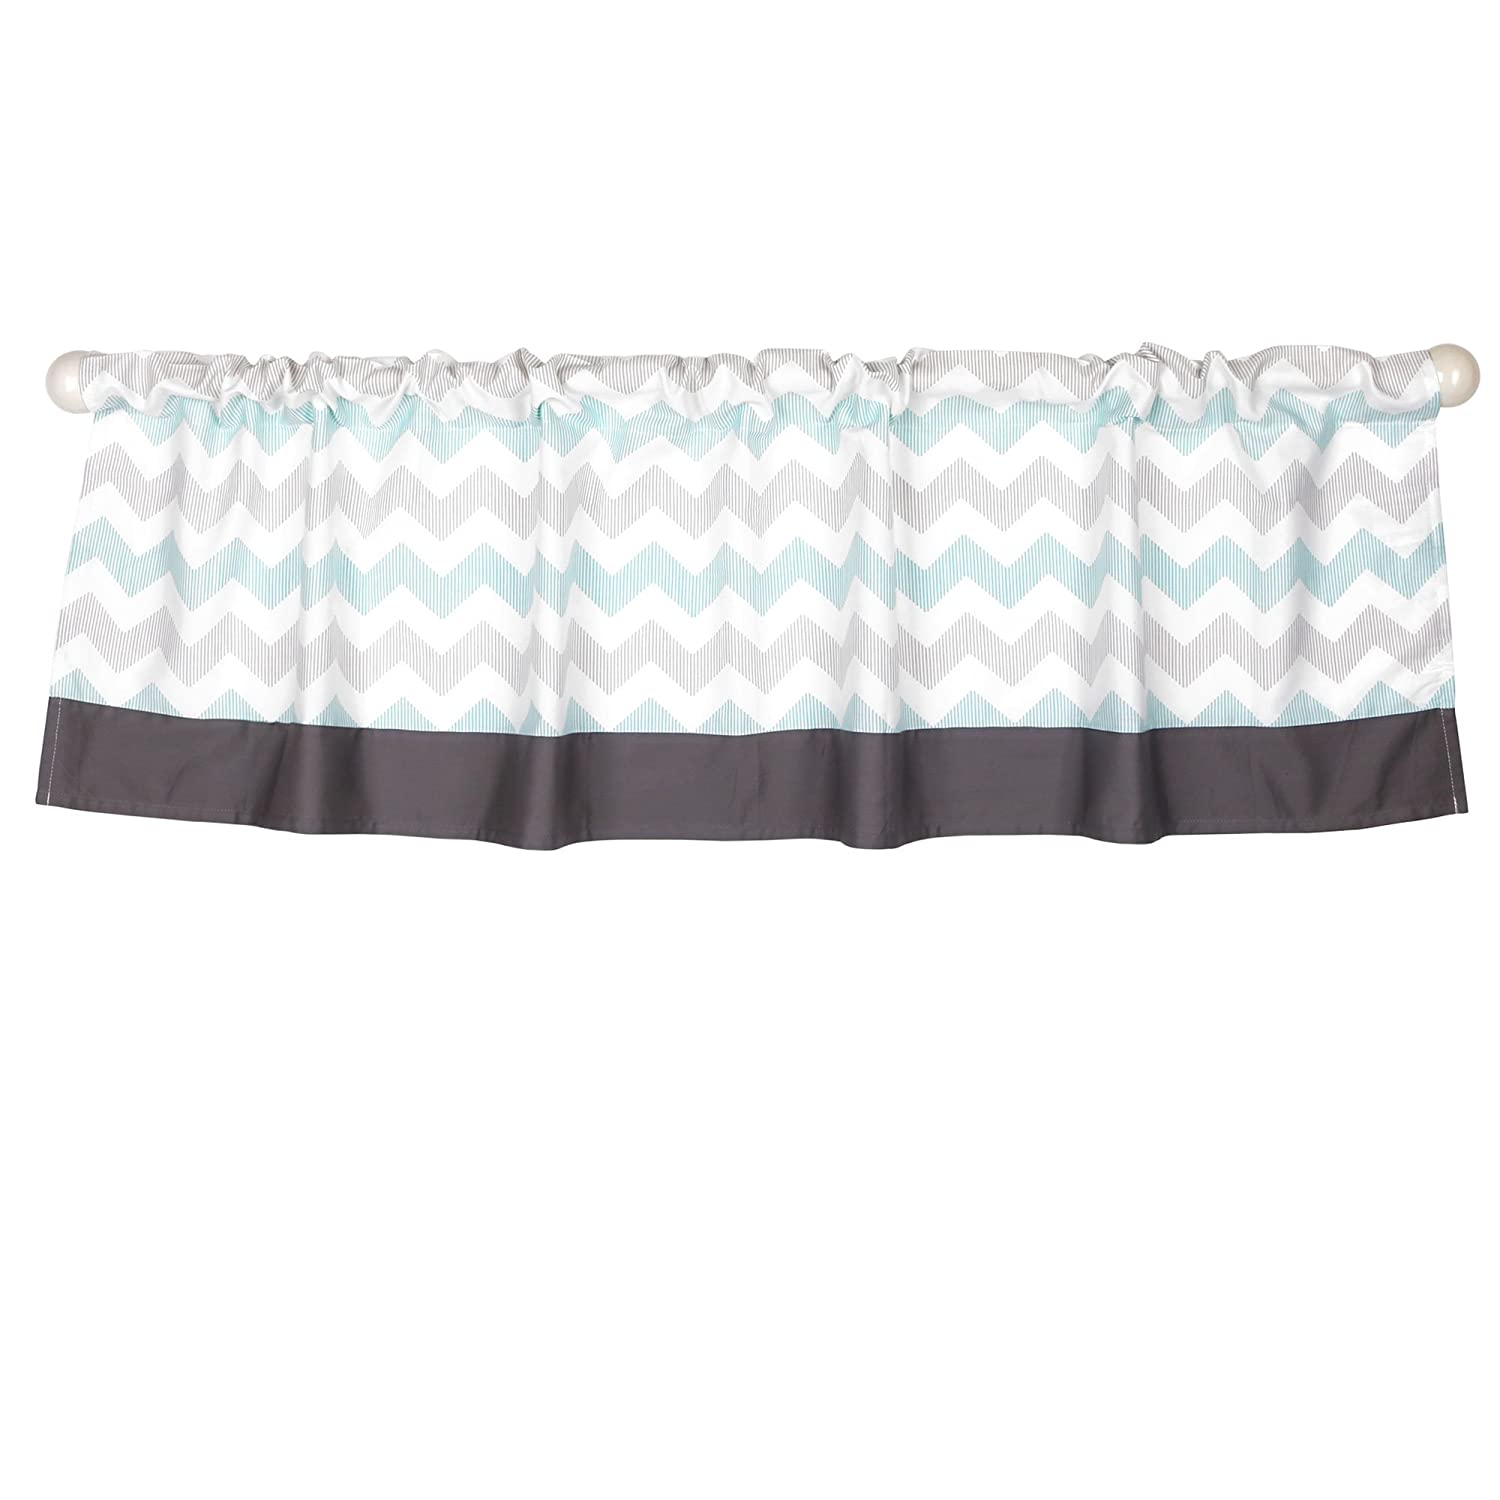 Uptown Giraffe Mint and Grey Chevron Window Valance by The Peanut Shell Farallon Brands WVPS-GIR